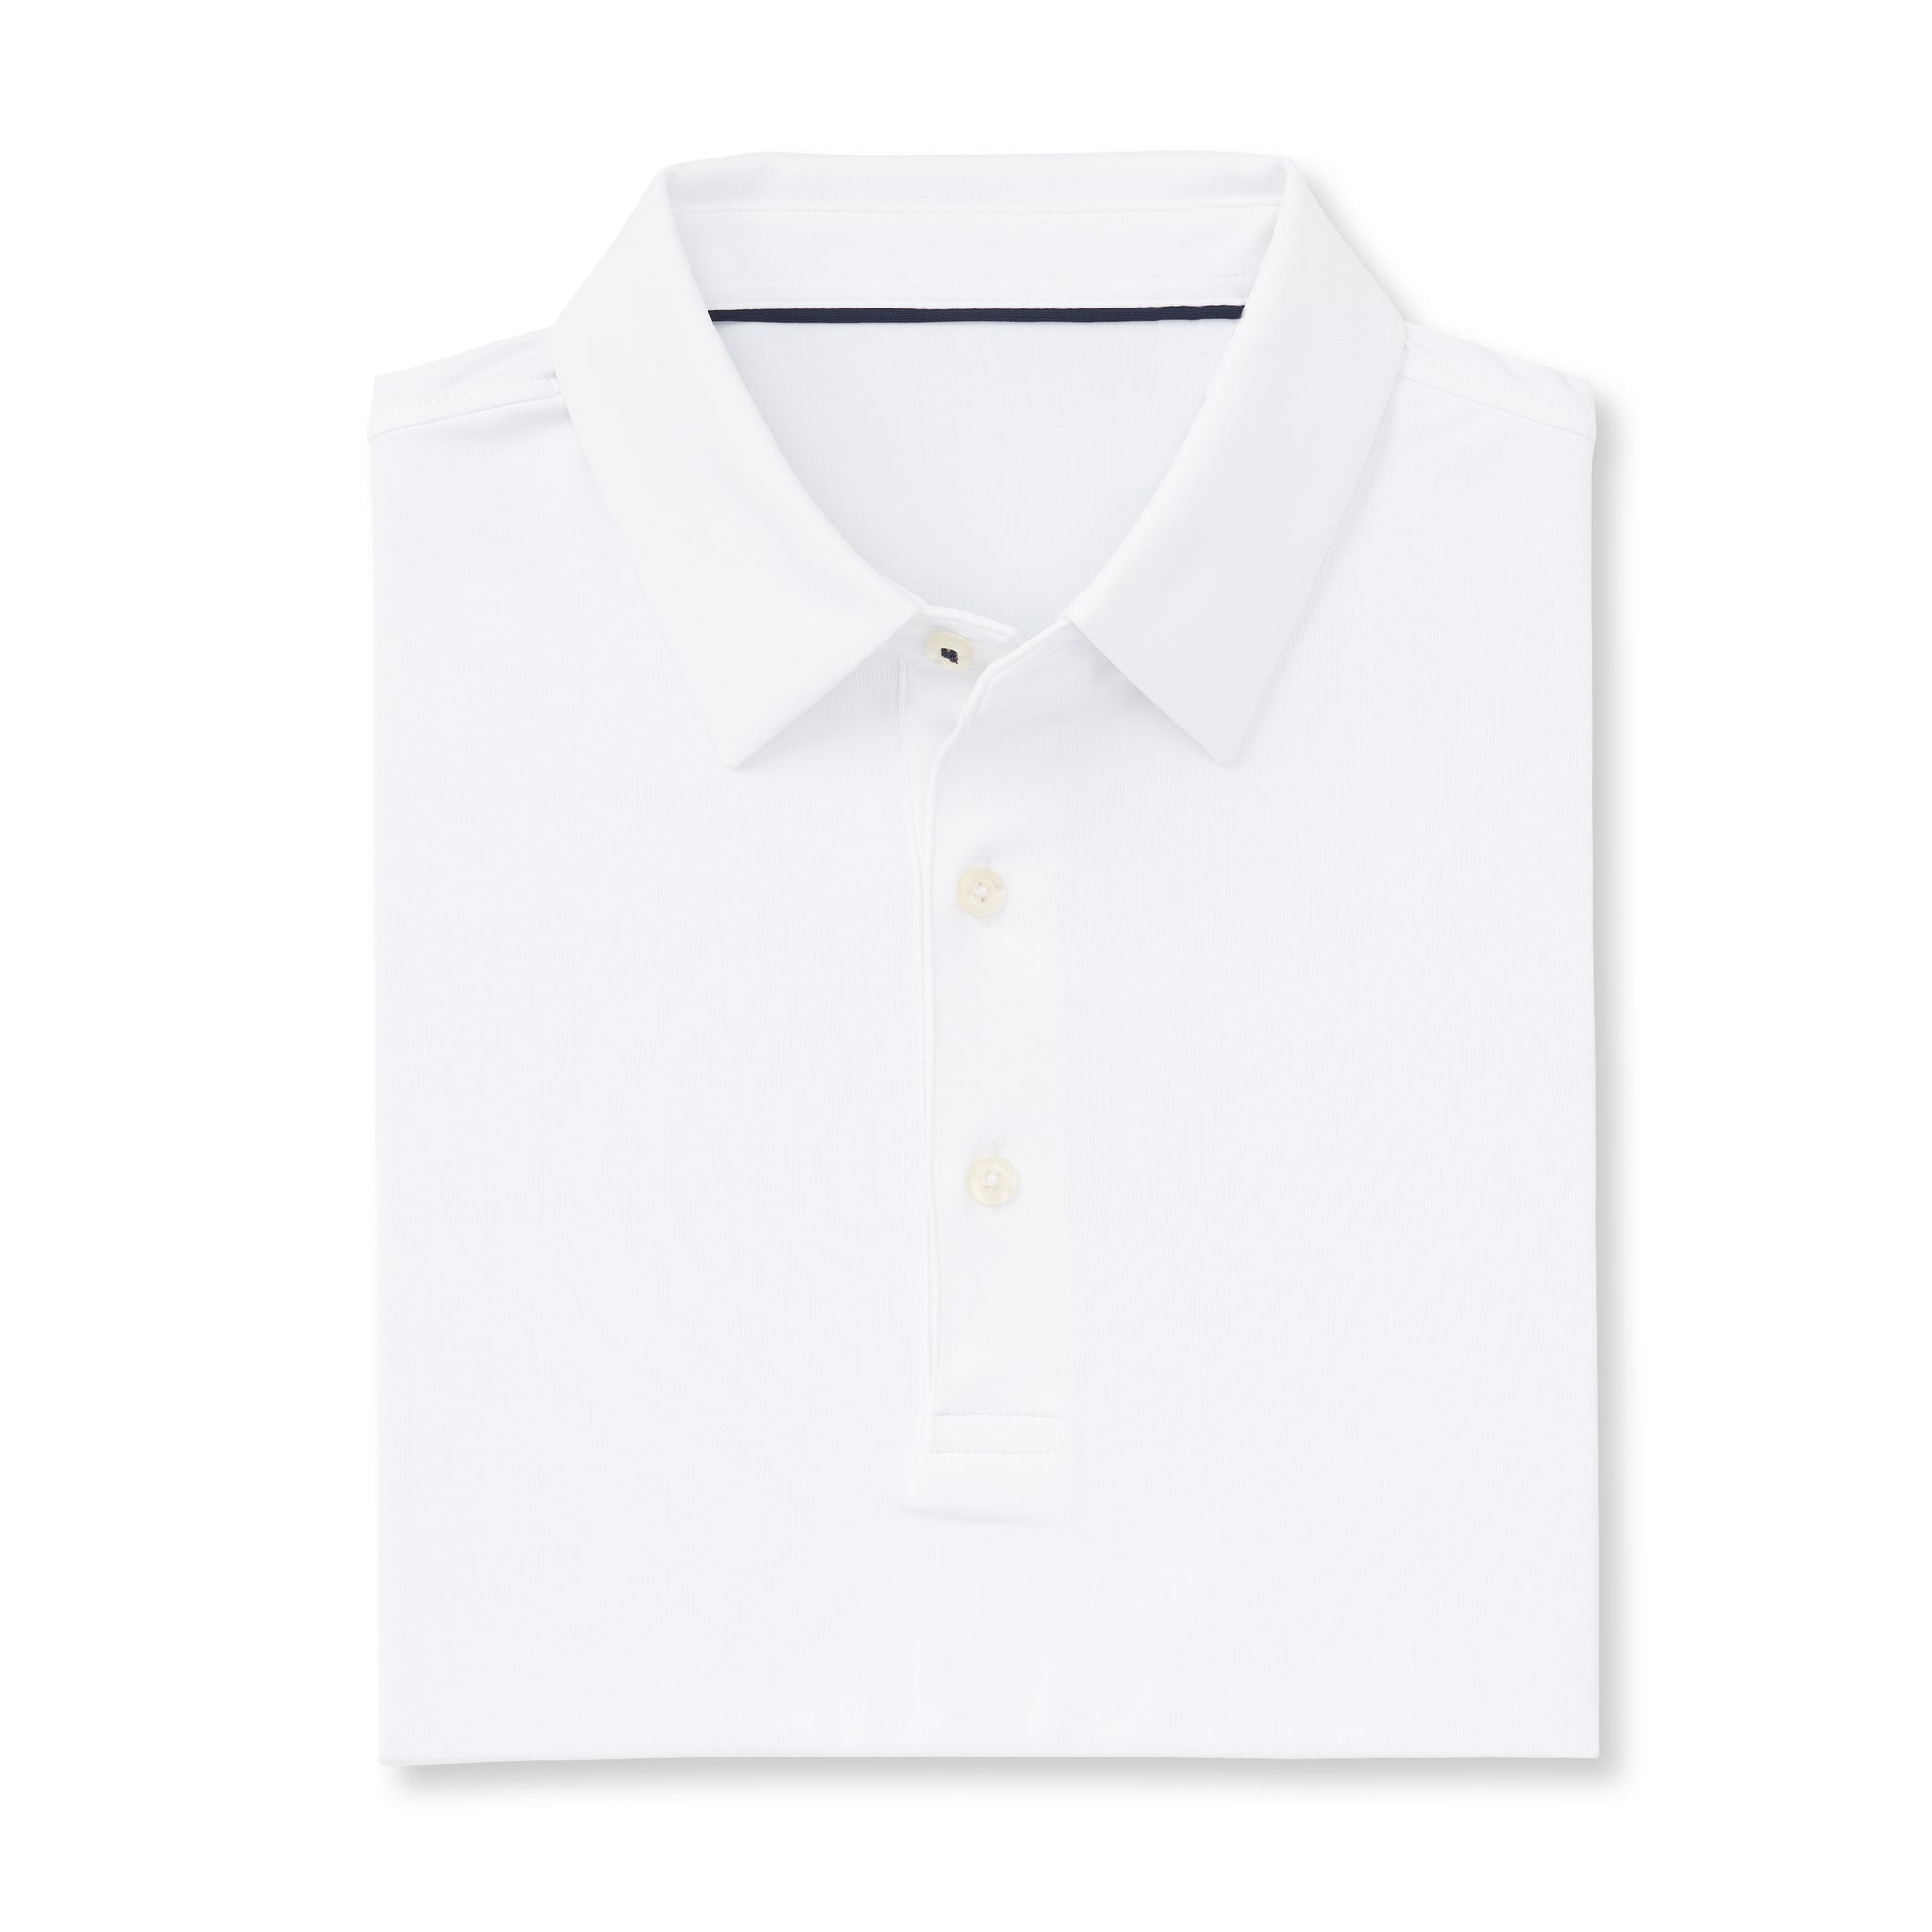 THE CLASSIC SHORT SLEEVE POLO - White IS26000